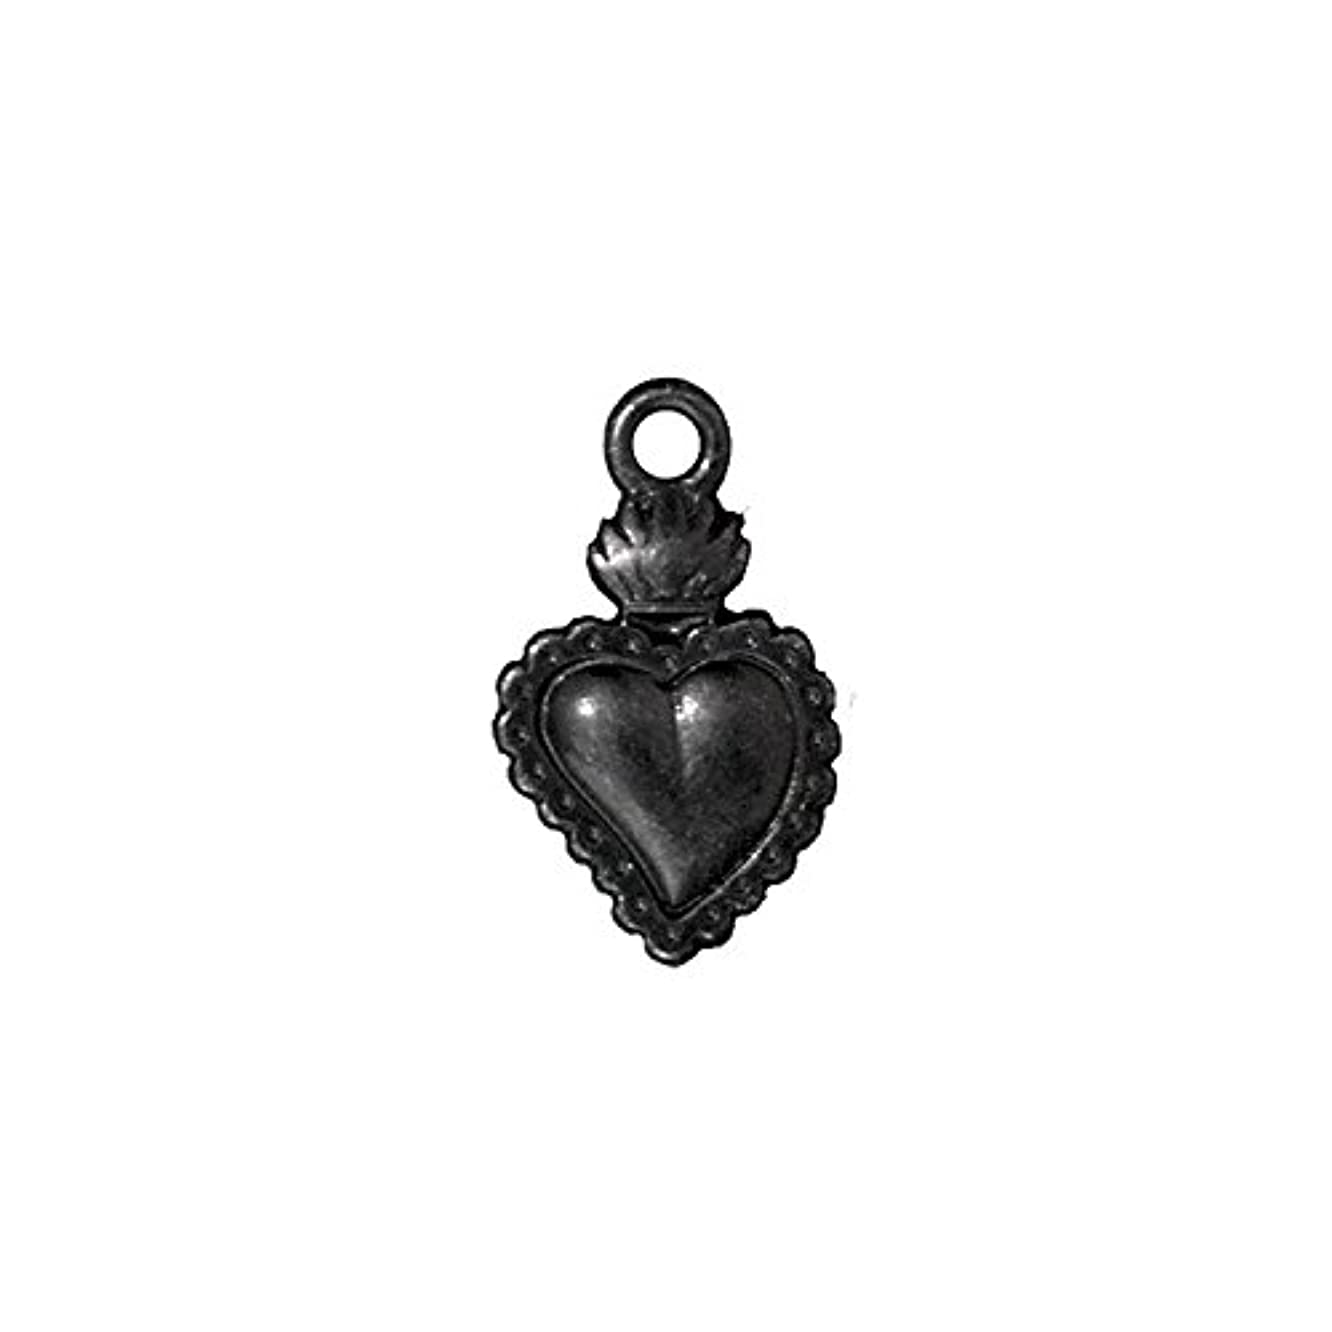 TierraCast Heart Milagro, 21.5mm, Black/Gunmetal Finish Pewter, 4-Pack